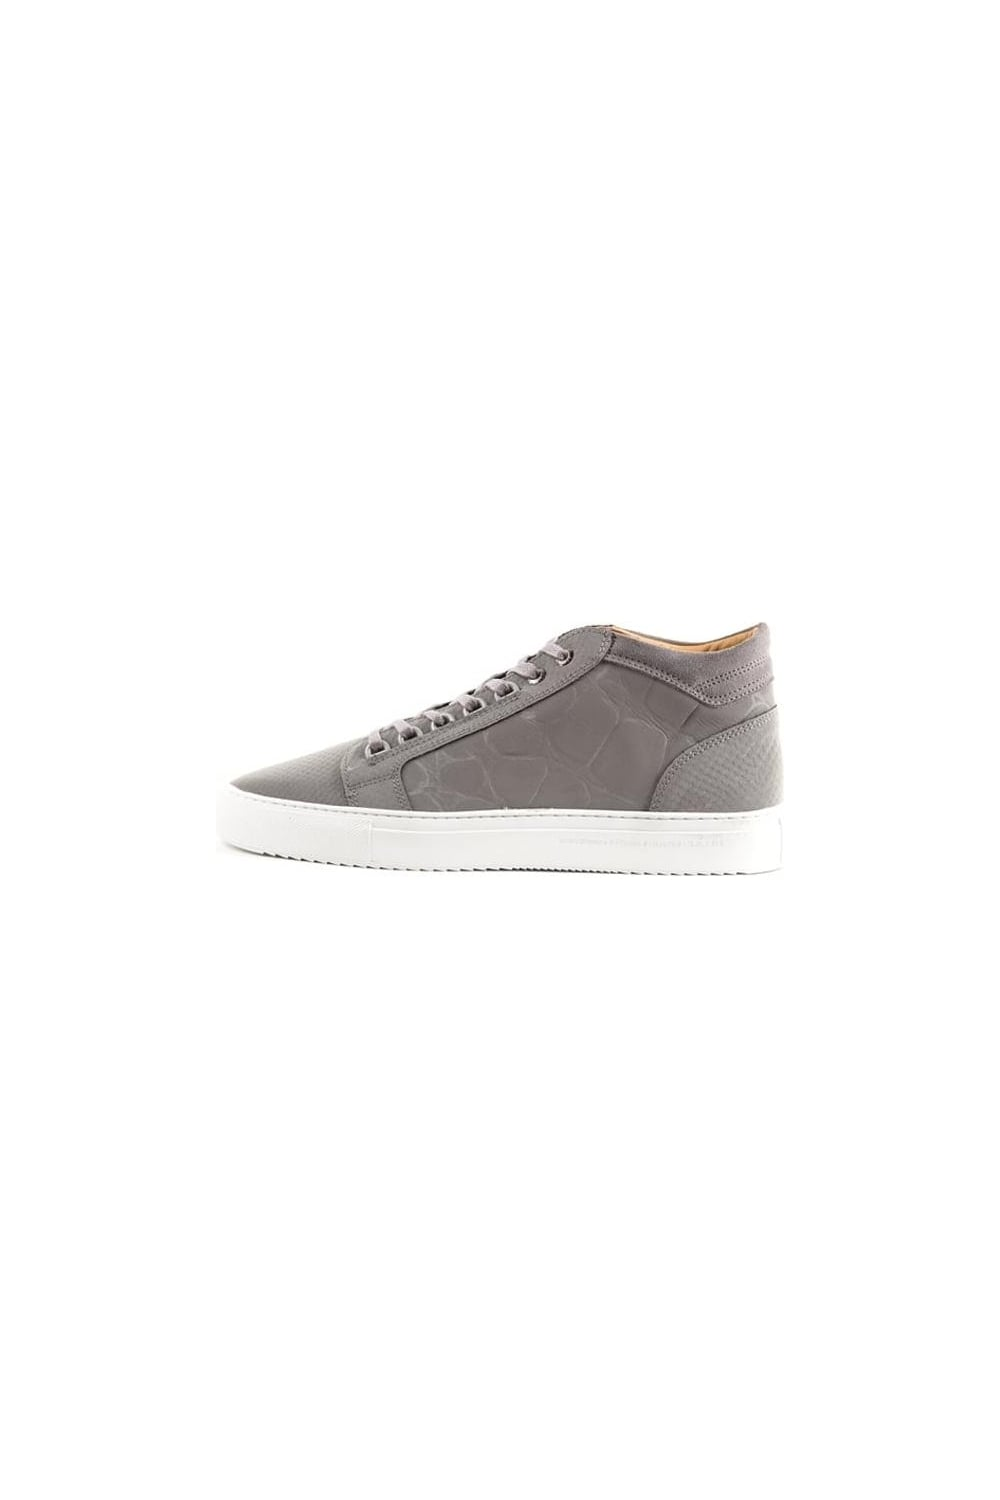 Android Homme | Propulsion Mid 116